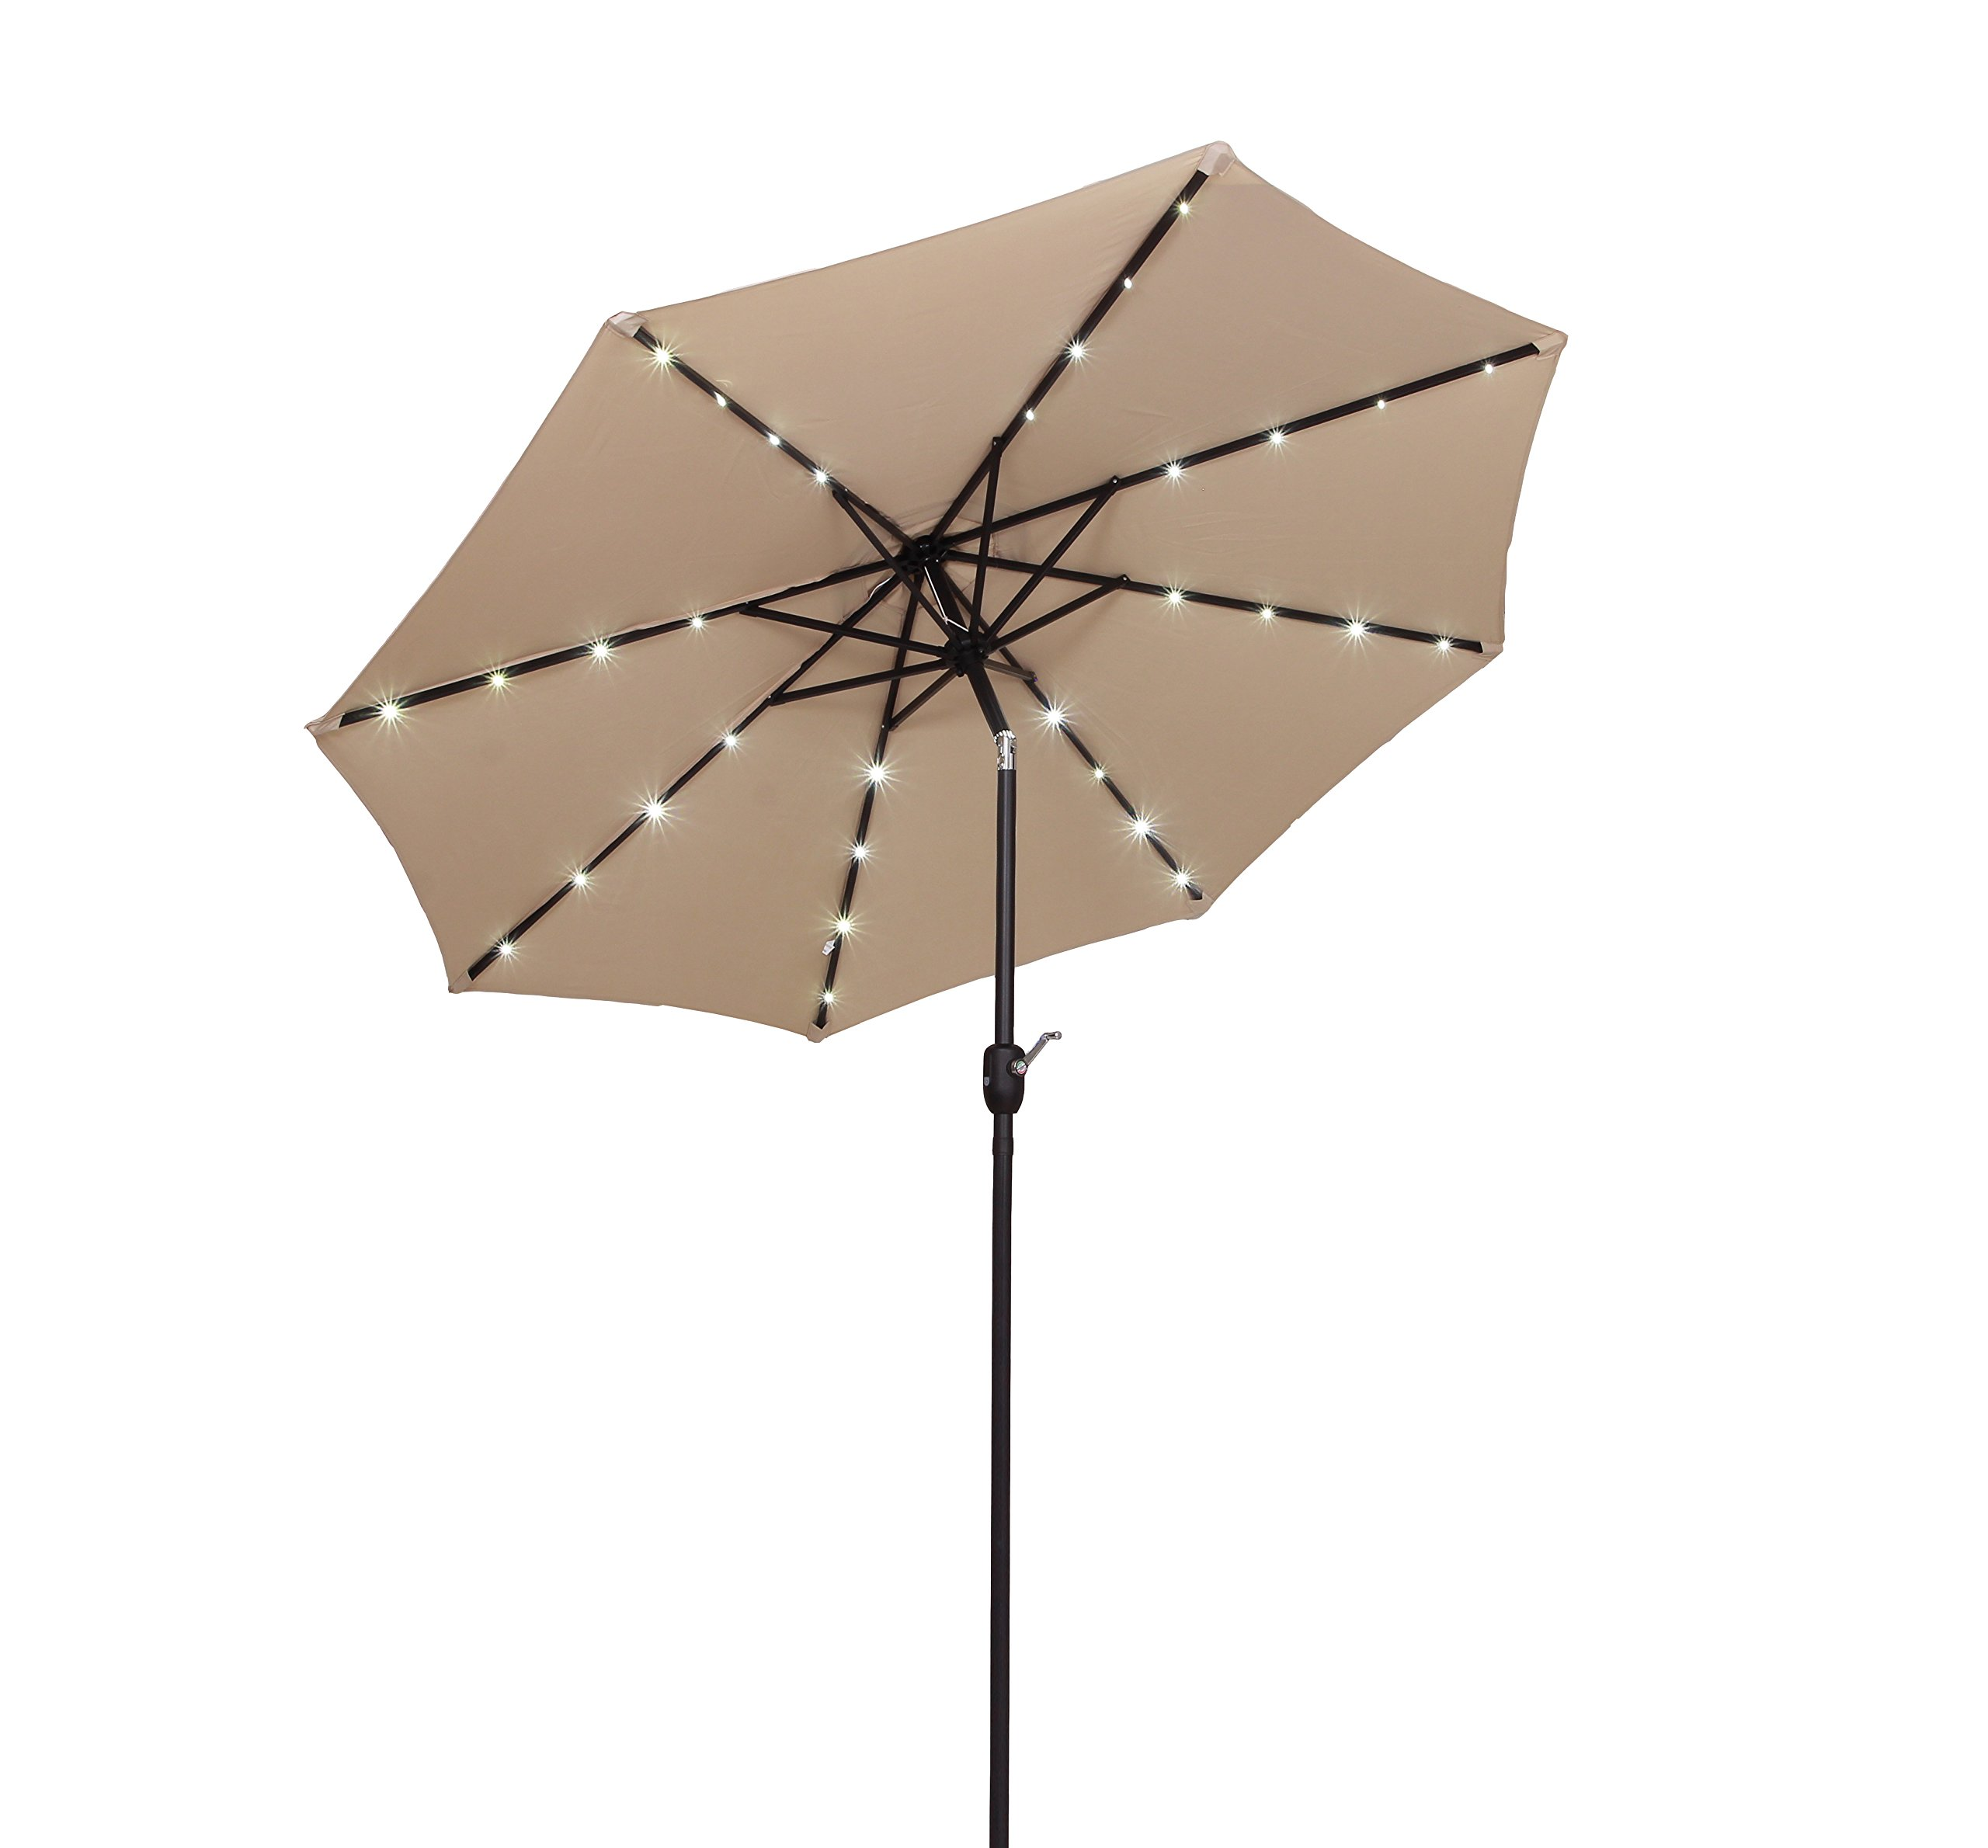 Tourke 9Ft LED Lighted Patio Market Umbrella Outdoor Solar Powered Table Steel Umbrella with Tilt and Crank (Beige) Solar Panel in Styrofoam